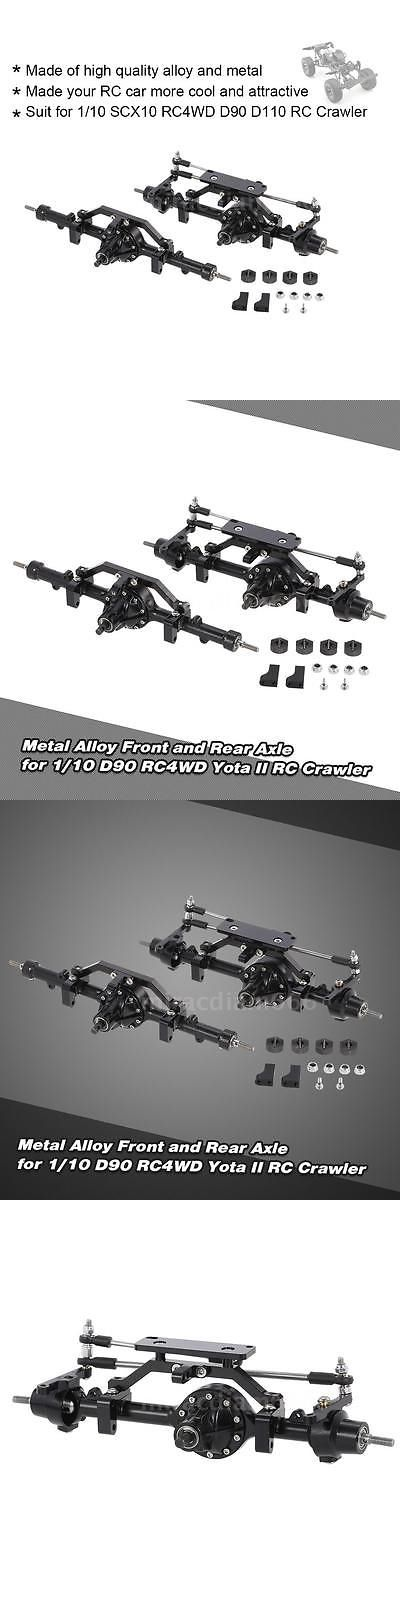 Suspension and Steering Parts 182199: Us! Metal Alloy Front Axle Rear Axle For 1 10 D90 Rc4wd Yota Ii Rc Crawler L5e6 -> BUY IT NOW ONLY: $91.49 on eBay!